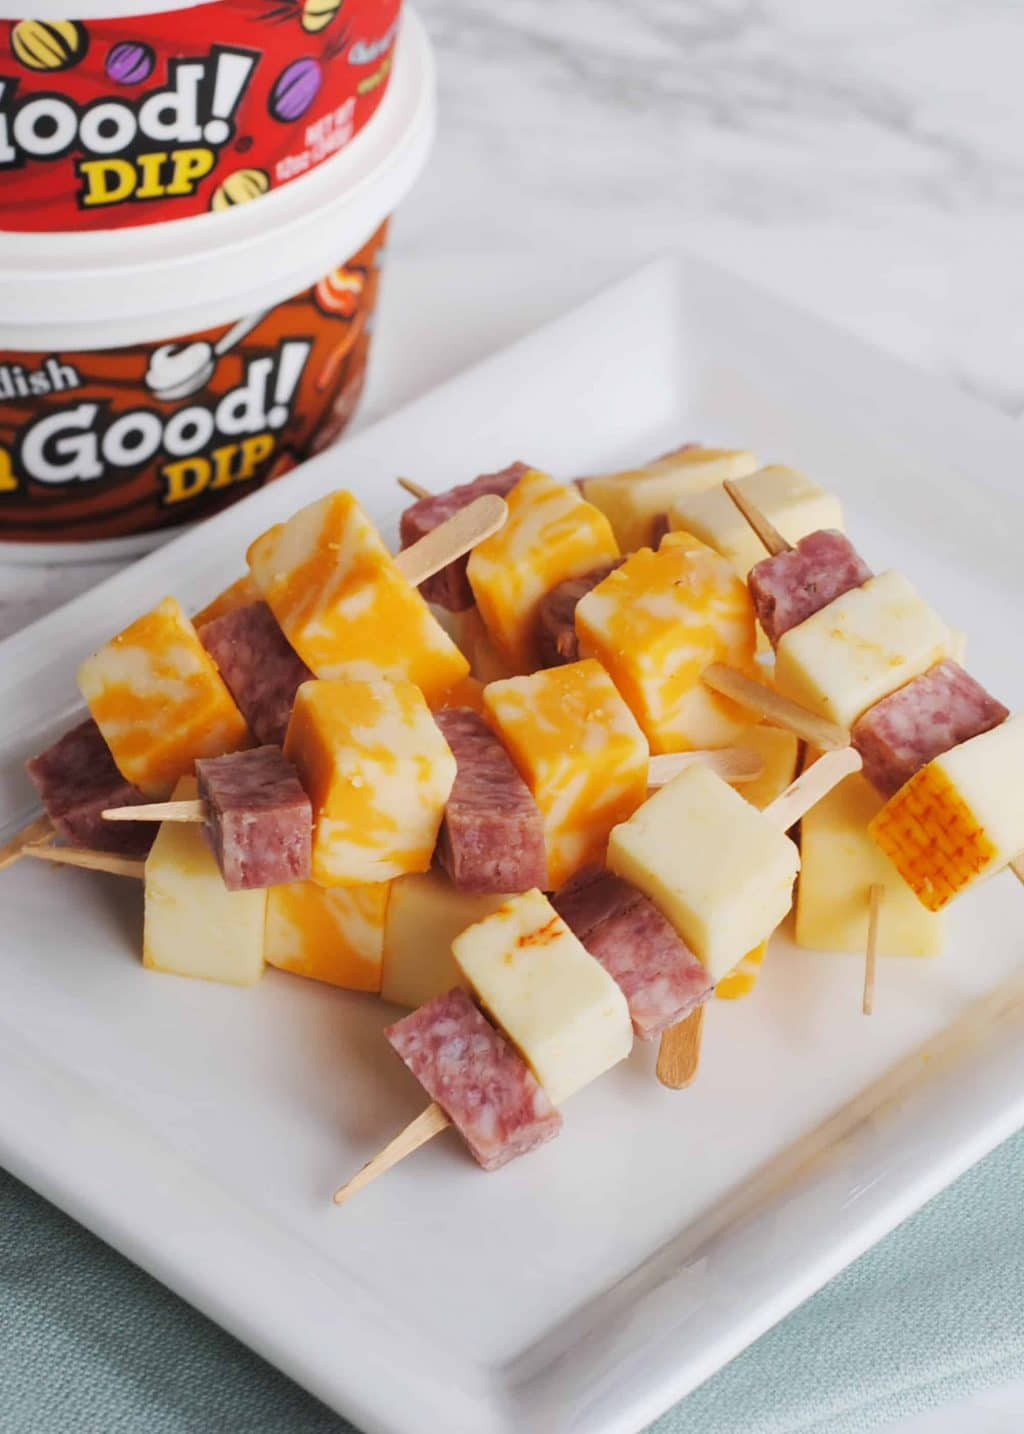 Tasty Salami and Cheese Dippers for Thanksgiving #ChipsDipsandTips #IC #ad